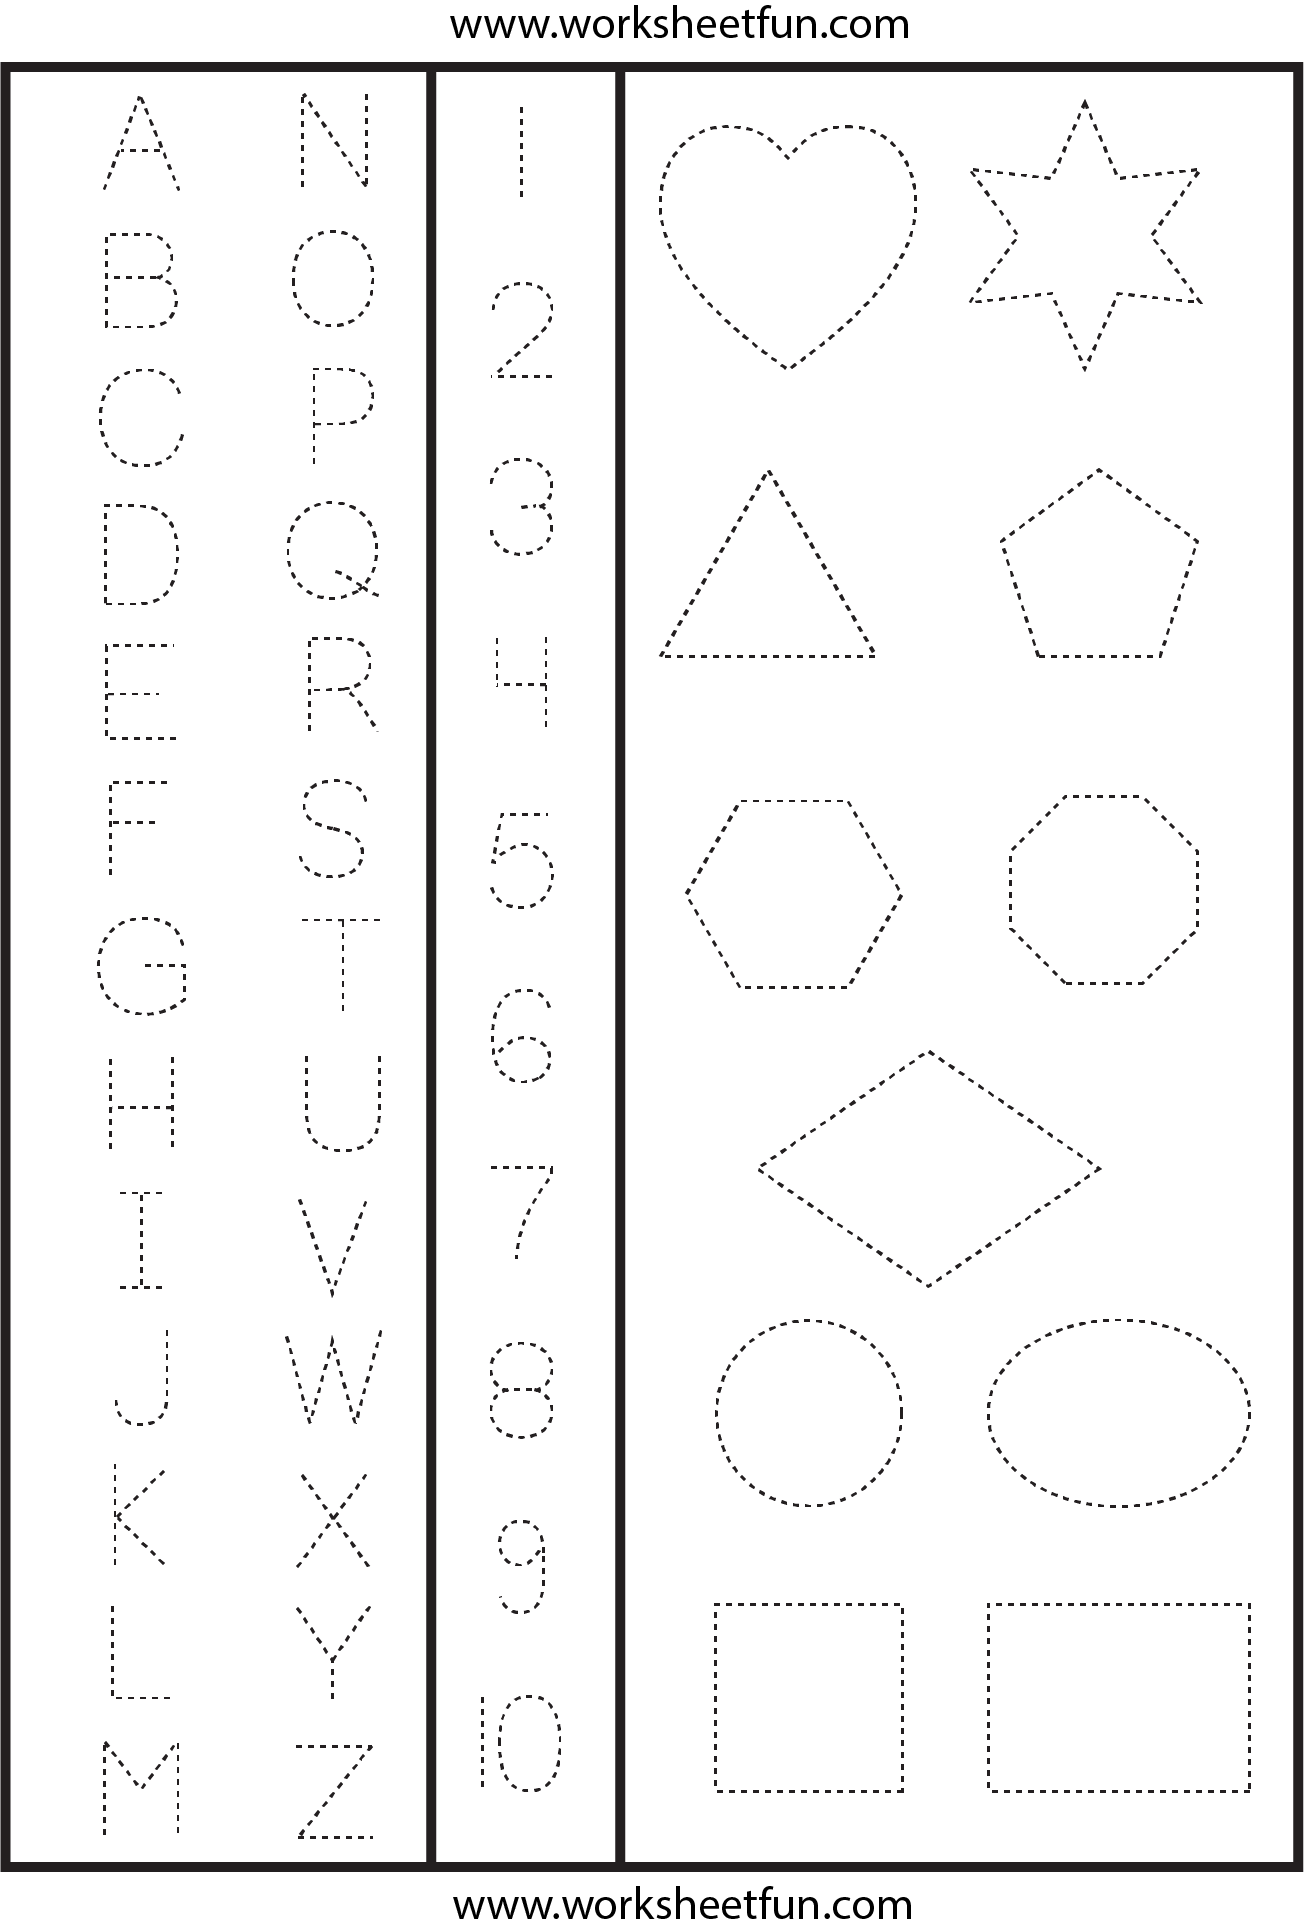 letters numbers shapes tracing worksheet printable worksheets. Black Bedroom Furniture Sets. Home Design Ideas